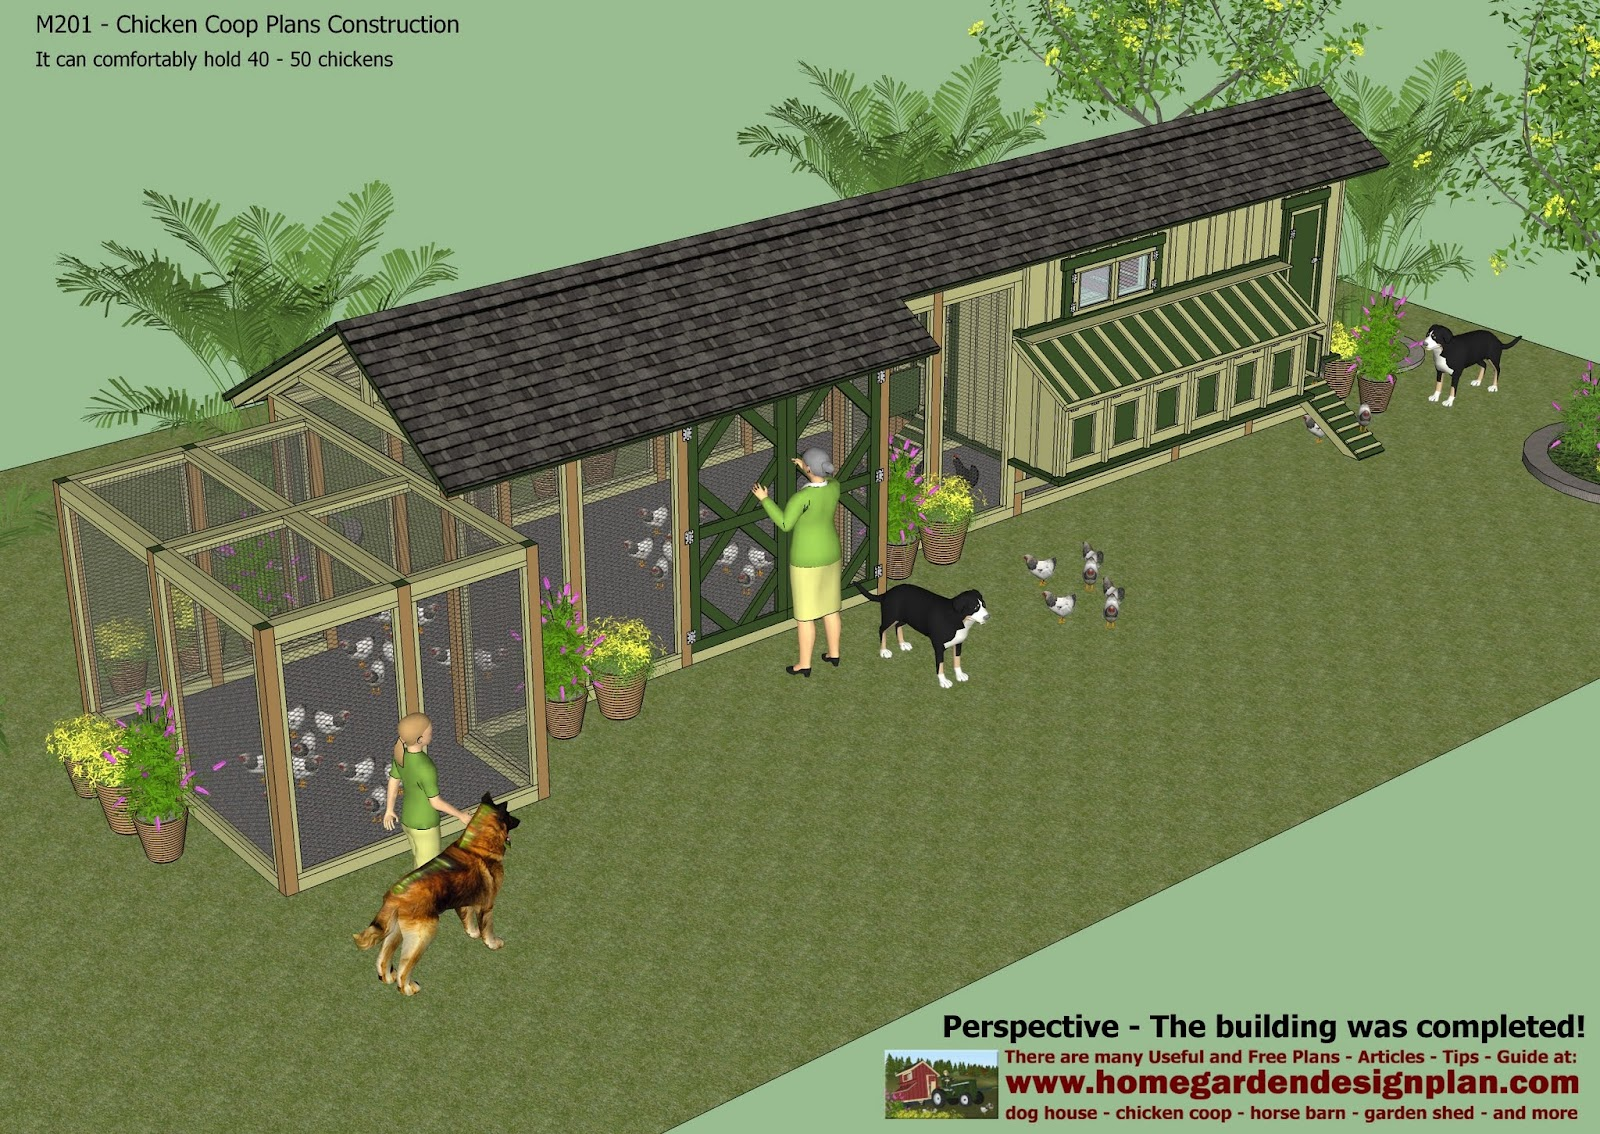 Chicken House Plans For 50 Chickens Home Garden Plans M201  Chicken Coop Plans Construction